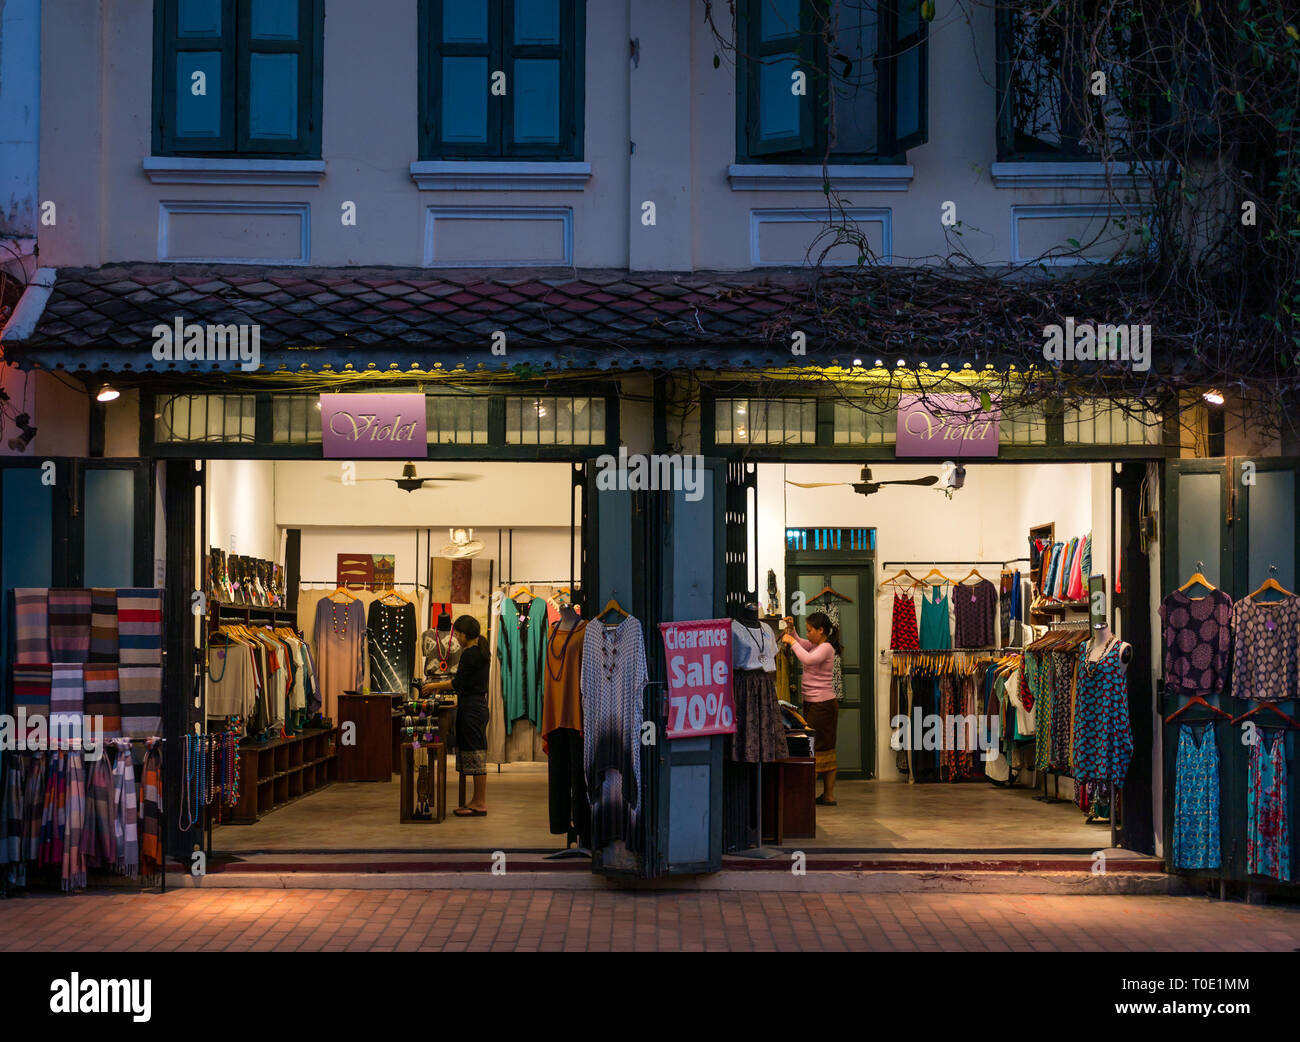 Woman's clothing shop called Violet selling dresses, shawls, and jewellry open at night, Luang Prabang, Laos, SE Asia - Stock Image